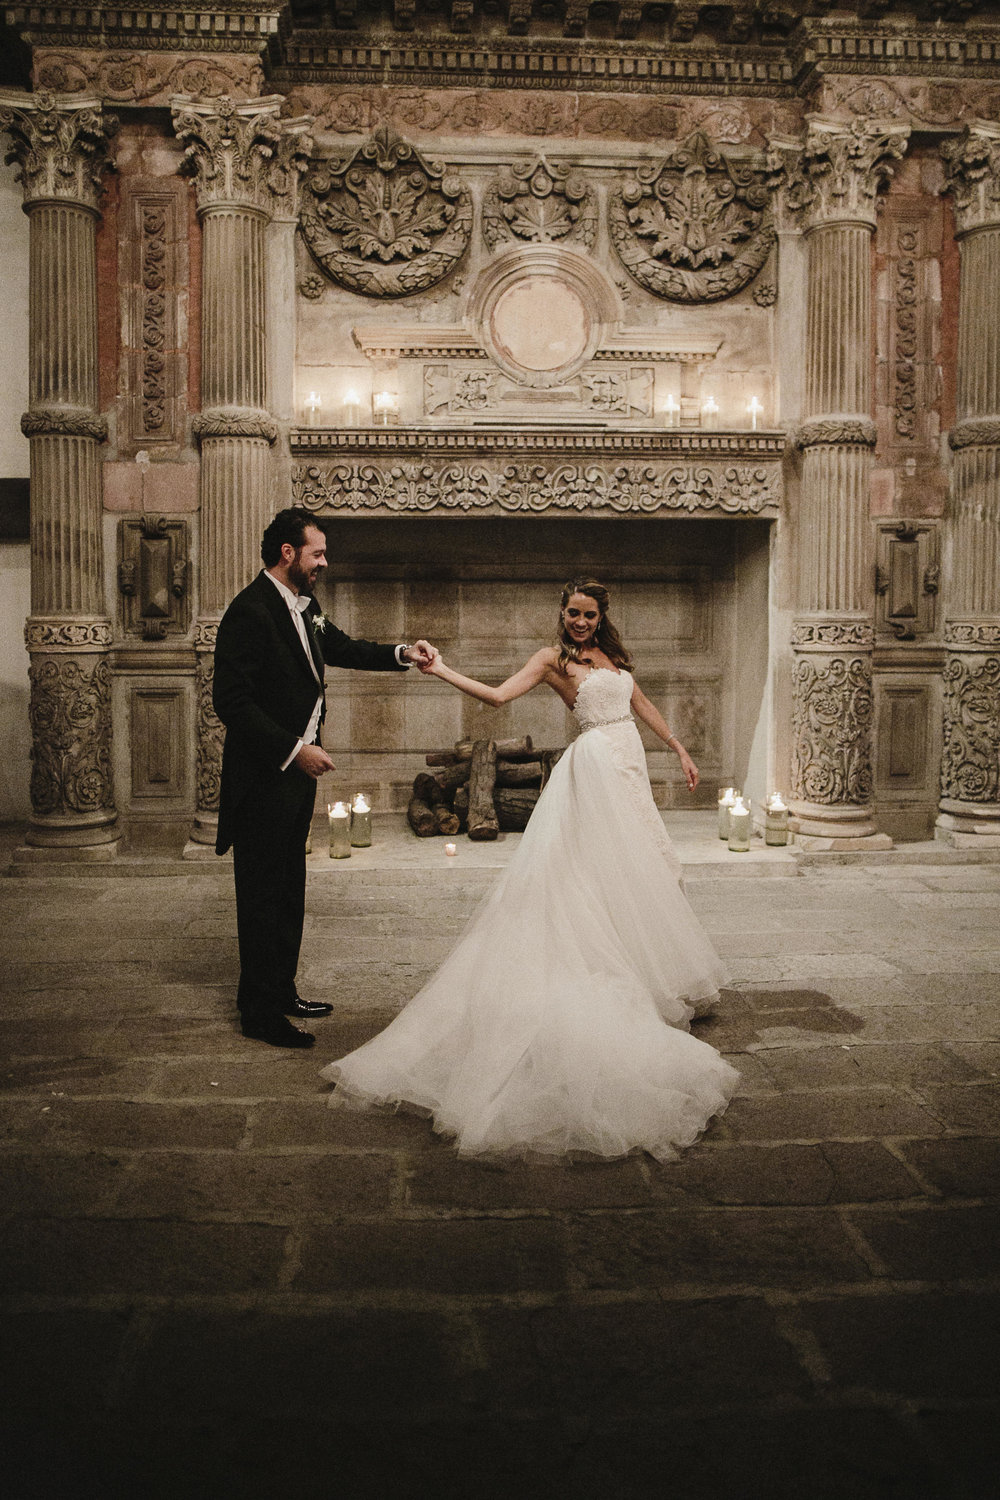 alfonso_flores_destination_wedding_photogrpahy_paola_alonso-850.JPG